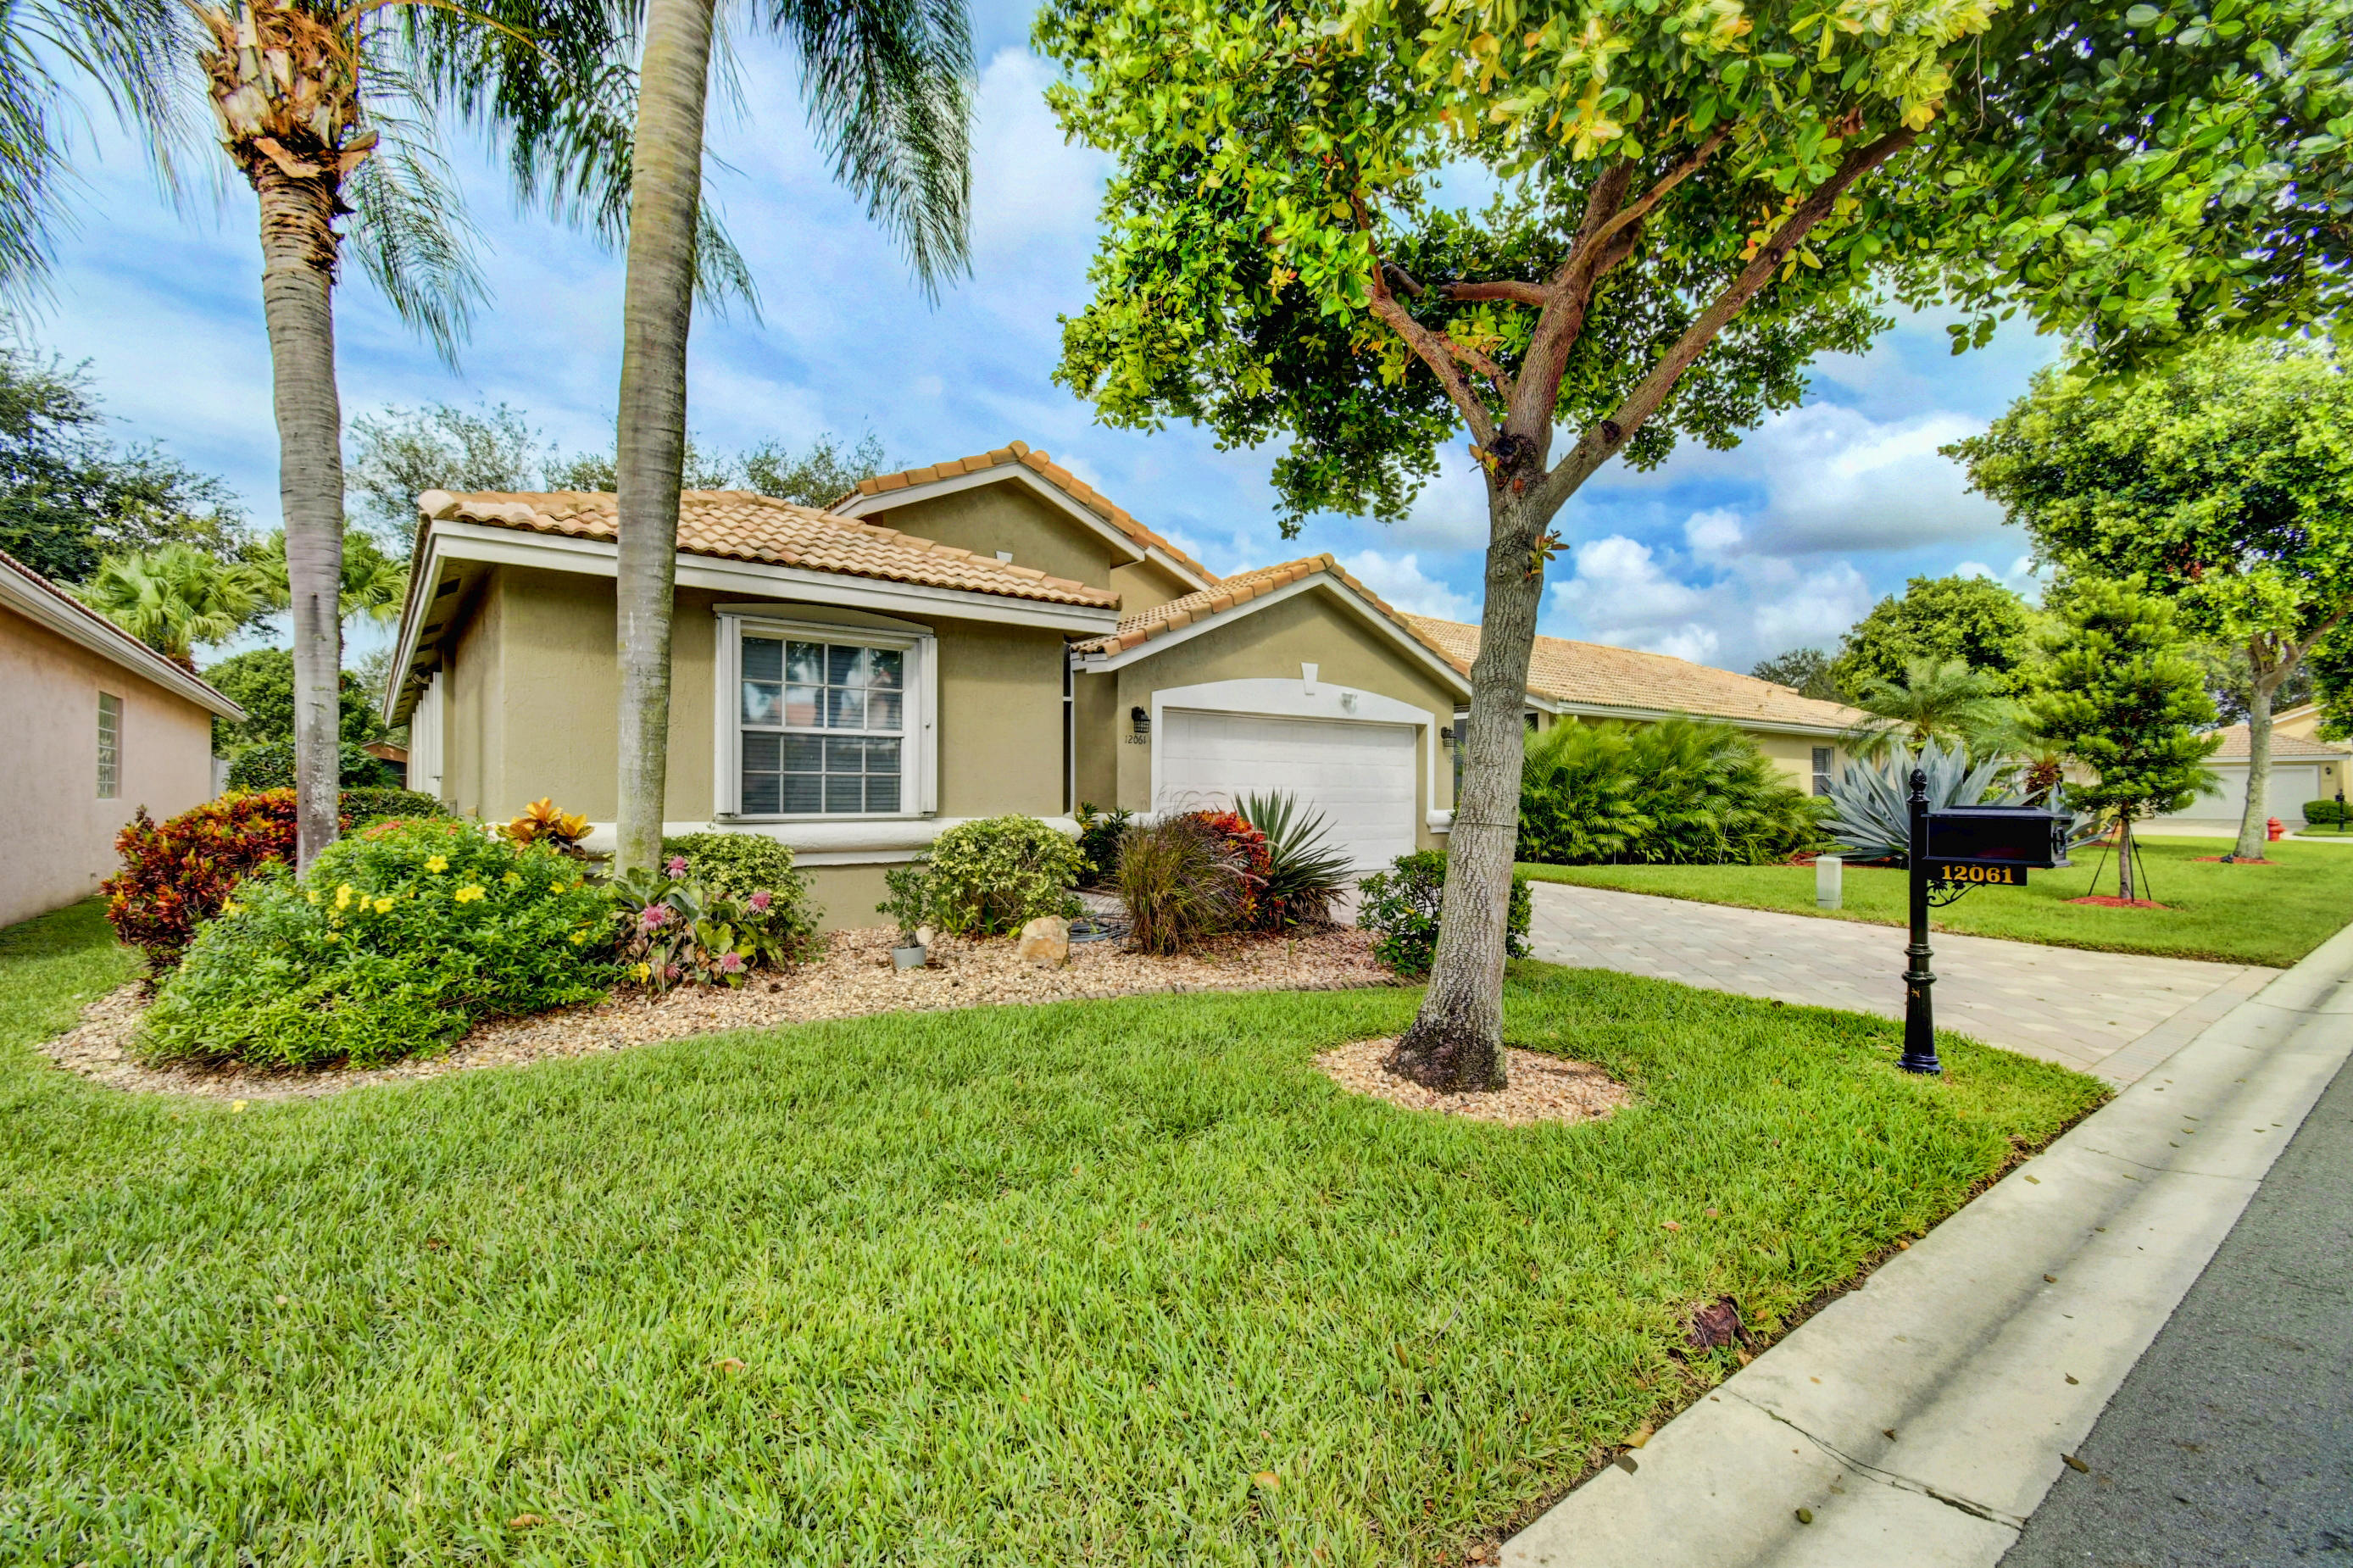 12061 Lido Lane  Boynton Beach FL 33437